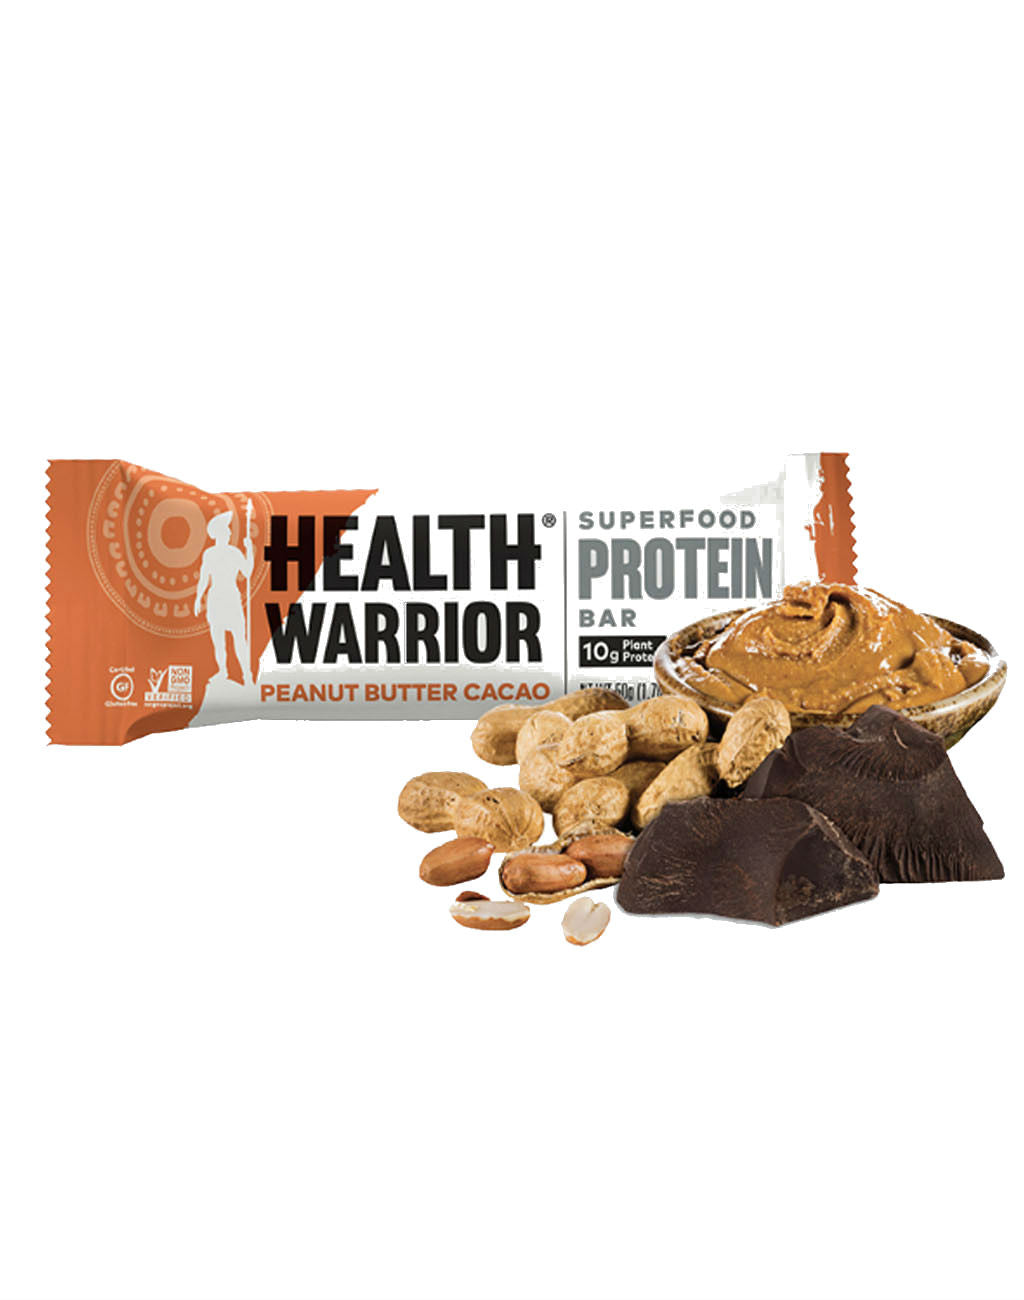 Health Warrior Superfood Protein Bars (12ct box)Peanut Butter Cacao_master_image